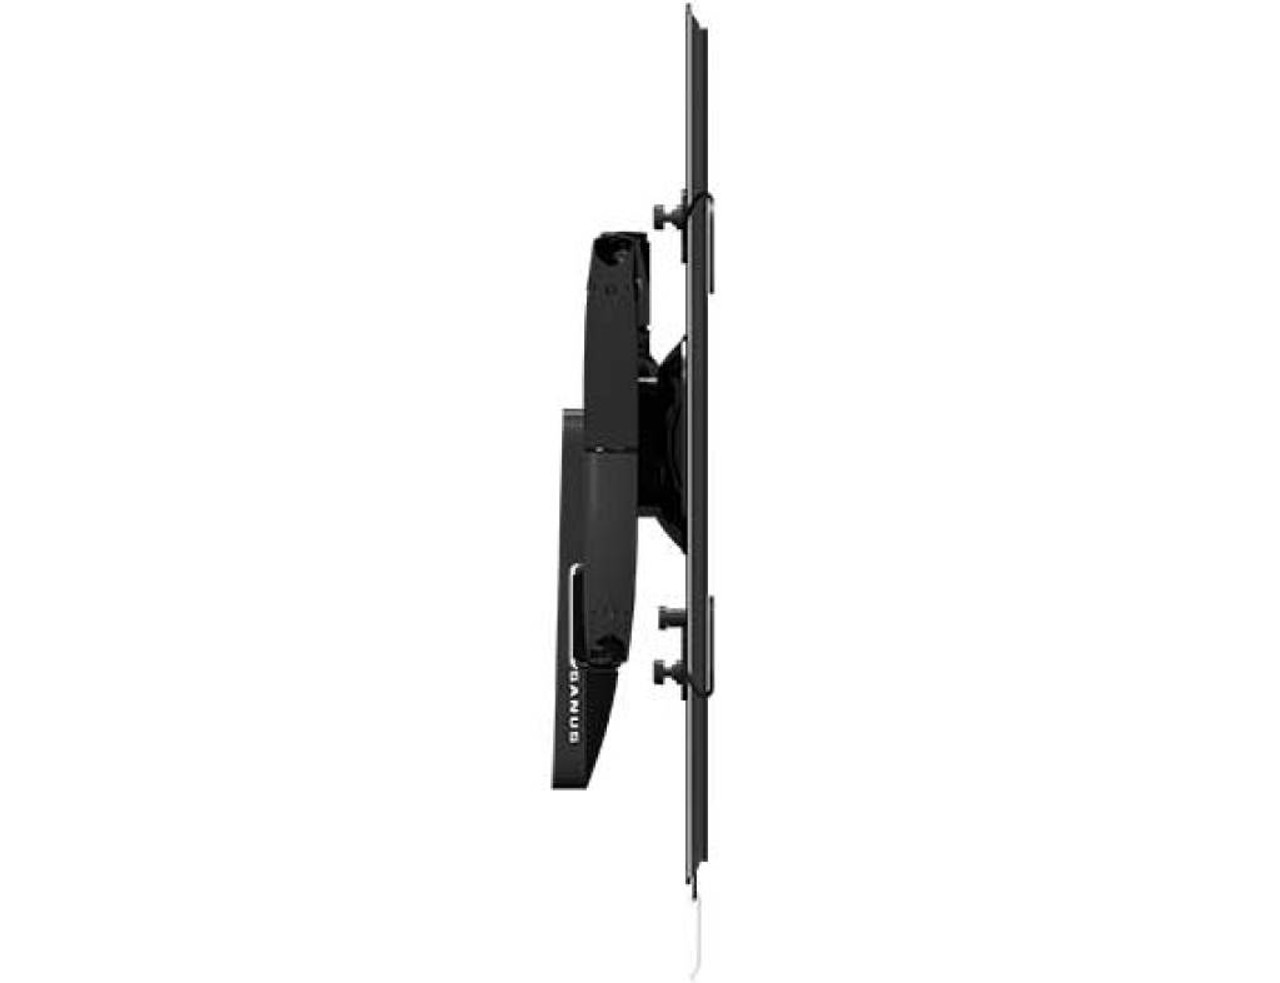 "Sanus VMF518-B1 Premium Series Full-Motion+ Mount for 40"" - 50"" Flat-panel TVs"